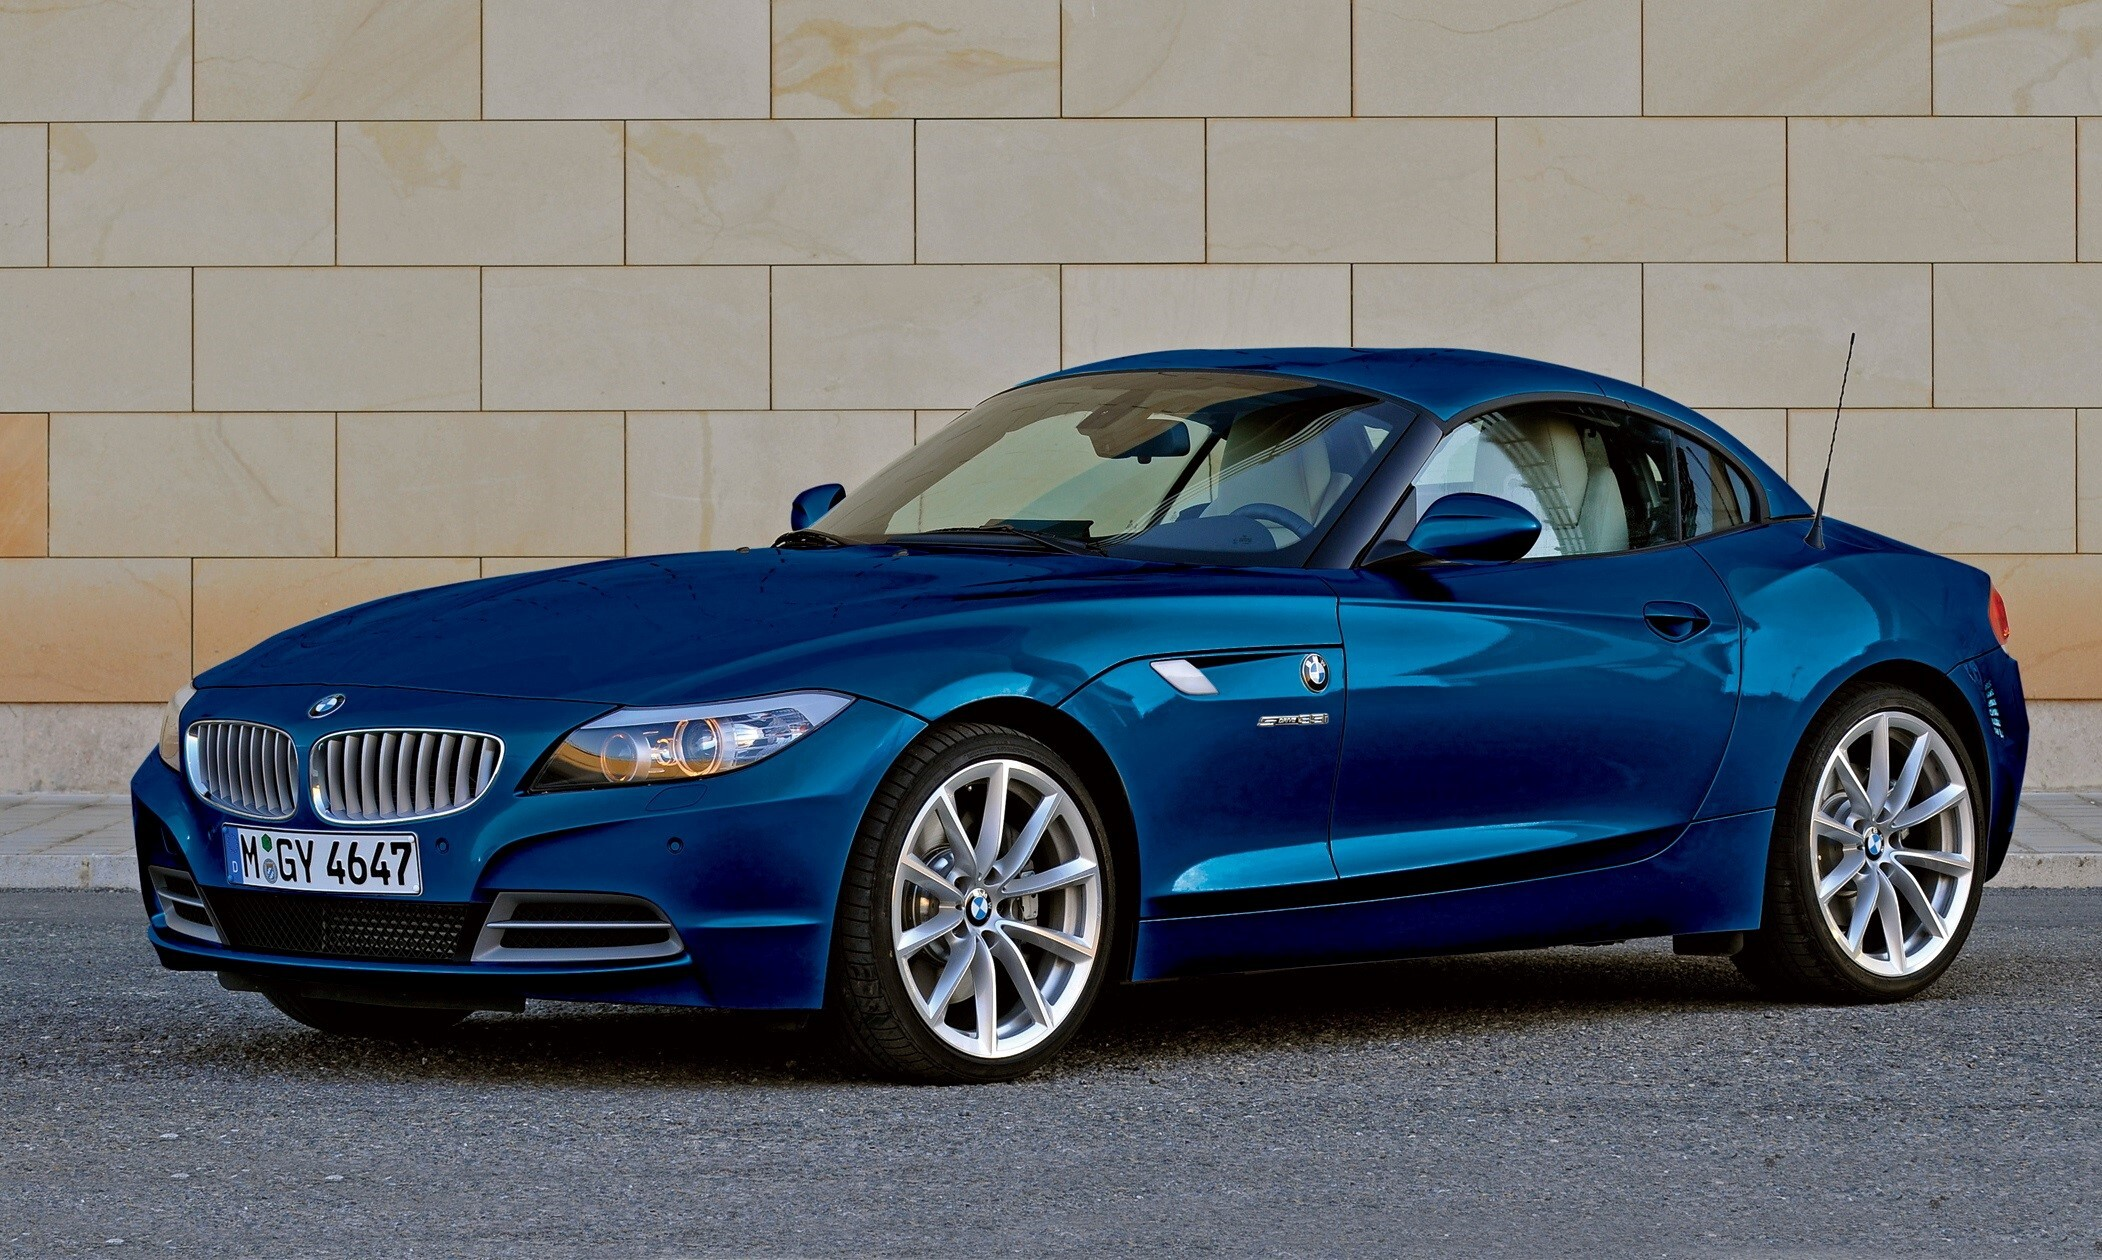 Super Blue Bmw Z4 Two Seater Car Wallpapers Hd Wallpapers